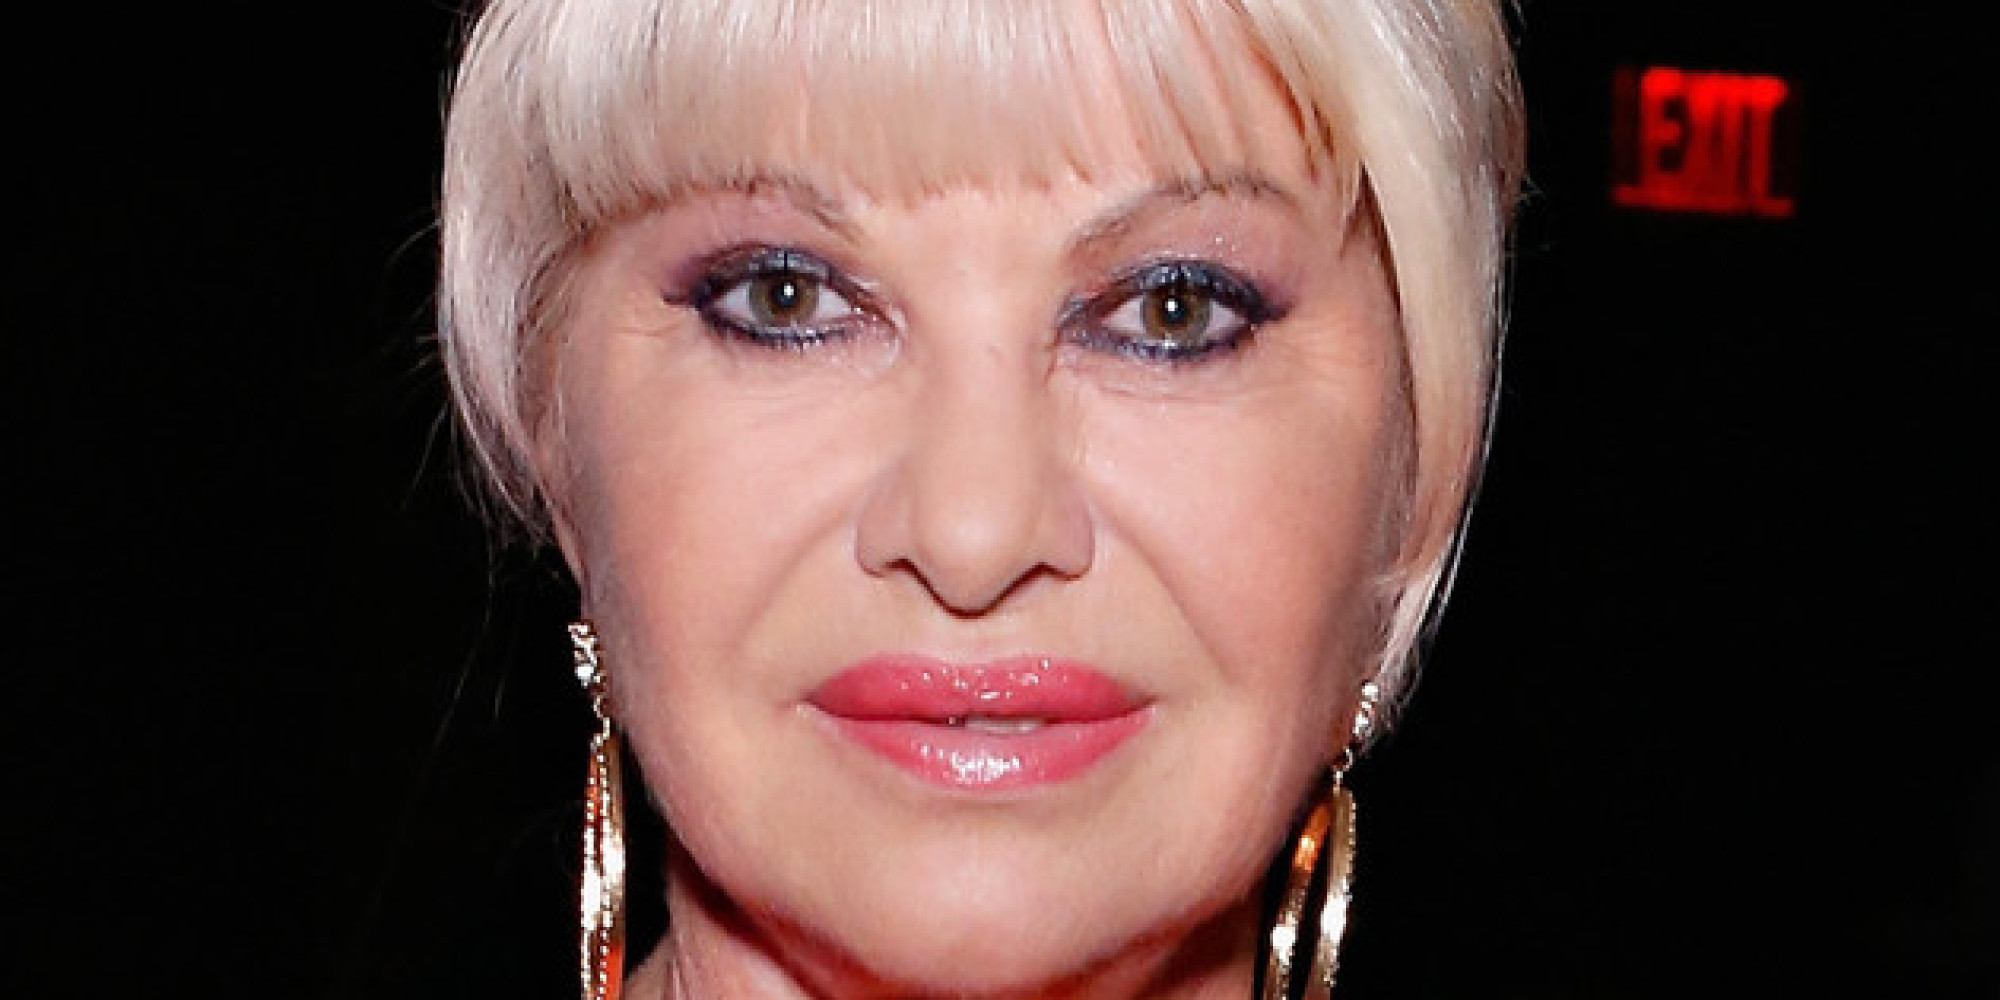 Being an Immigrant Woman: The Case of Ivana Trump | HuffPost